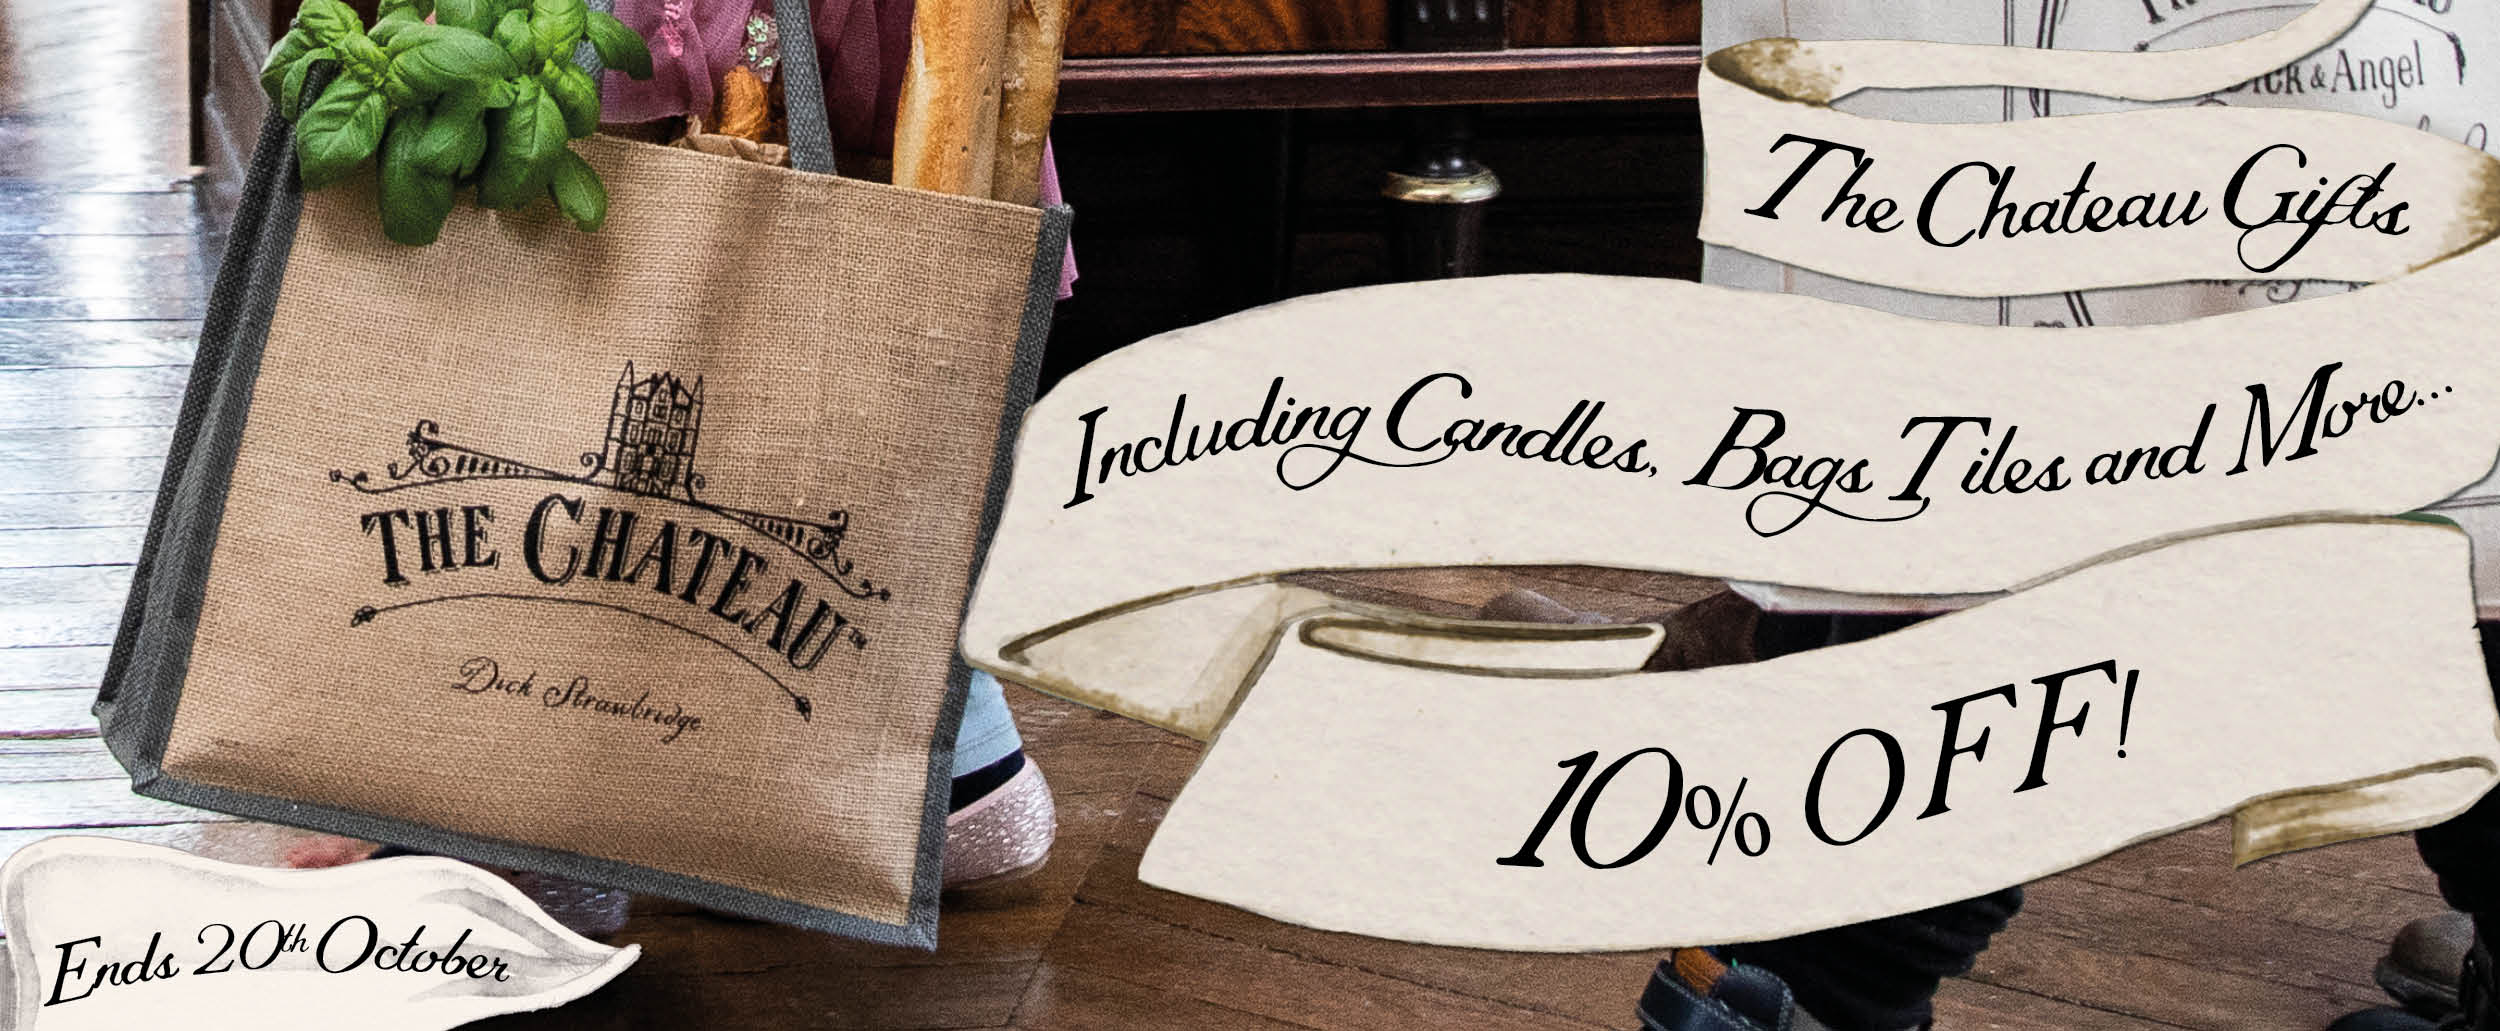 '10% off The Chateau gifts